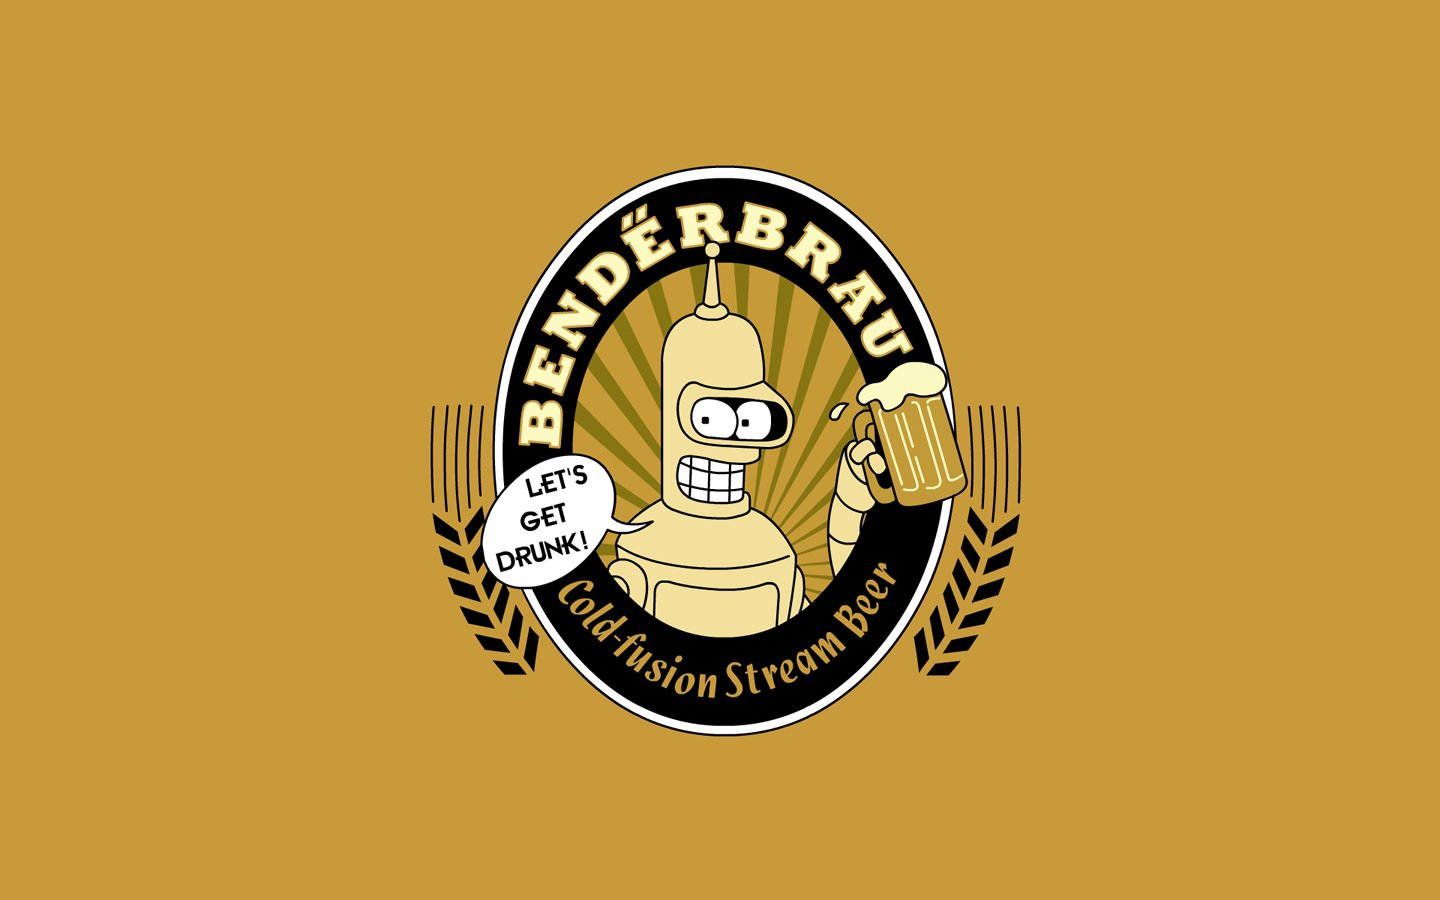 Download Futurama Bender Wallpaper 1440x900 Wallpoper 1440x900